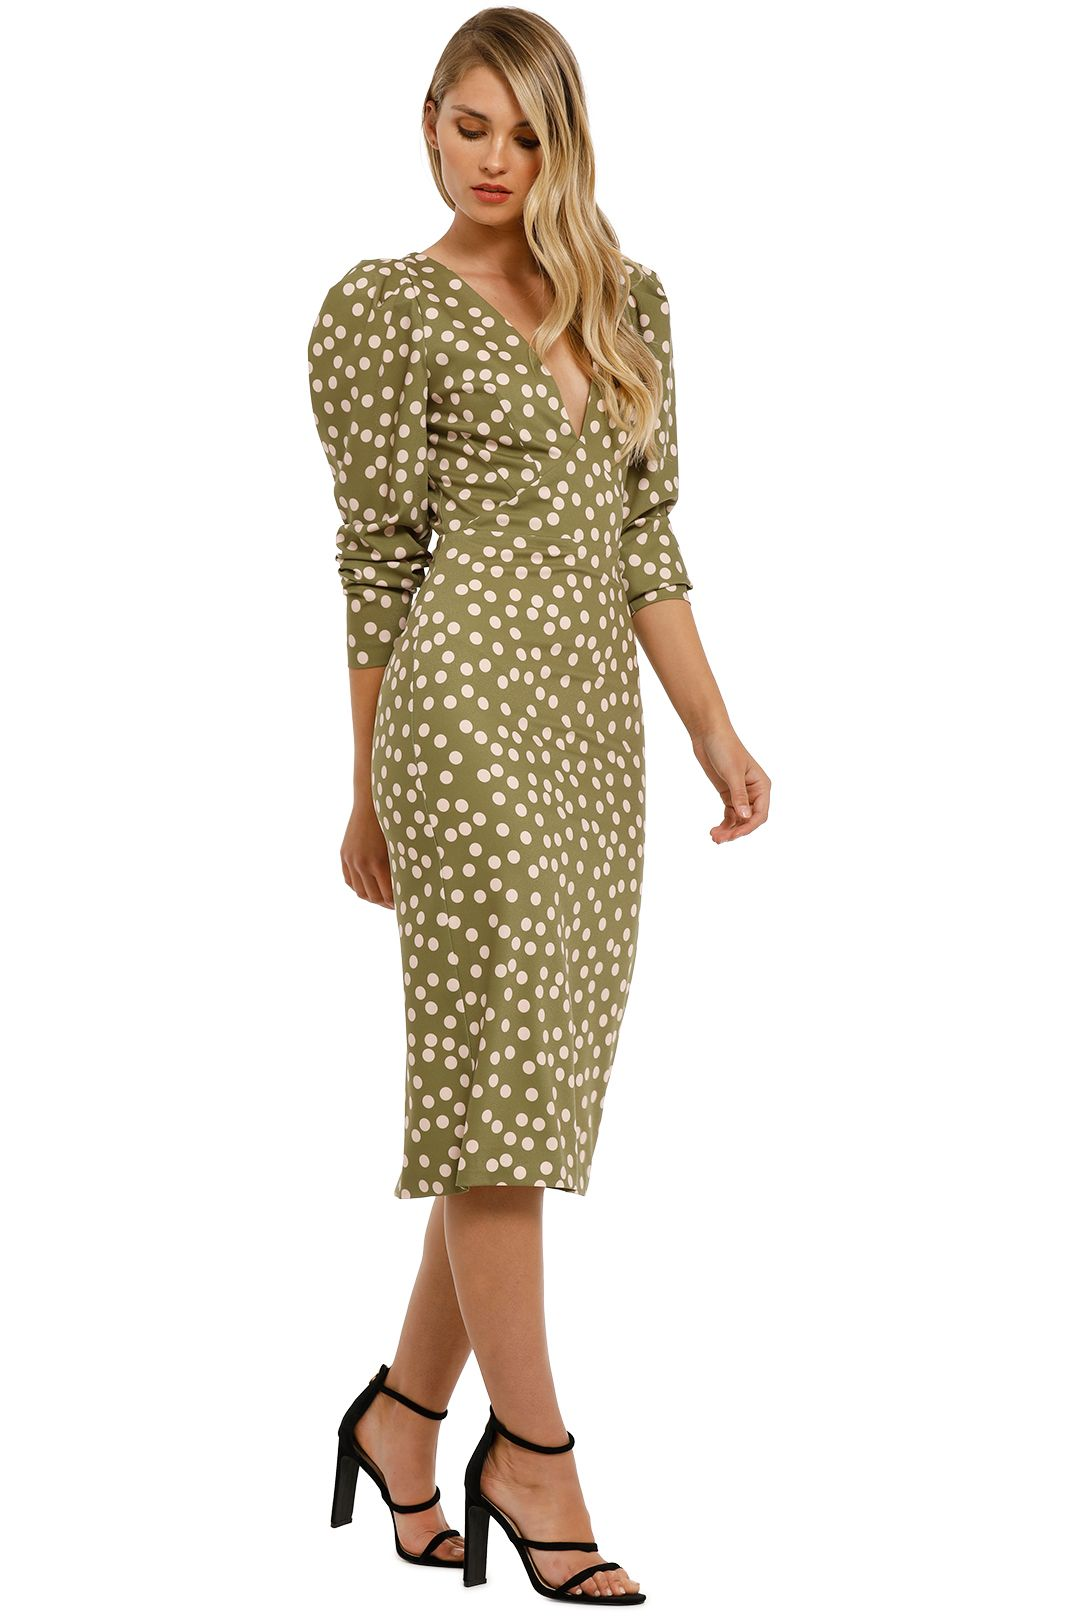 By-Johnny-Peach-Polka-V-Plunge-Midi-Dress-Olive-Peach-Side